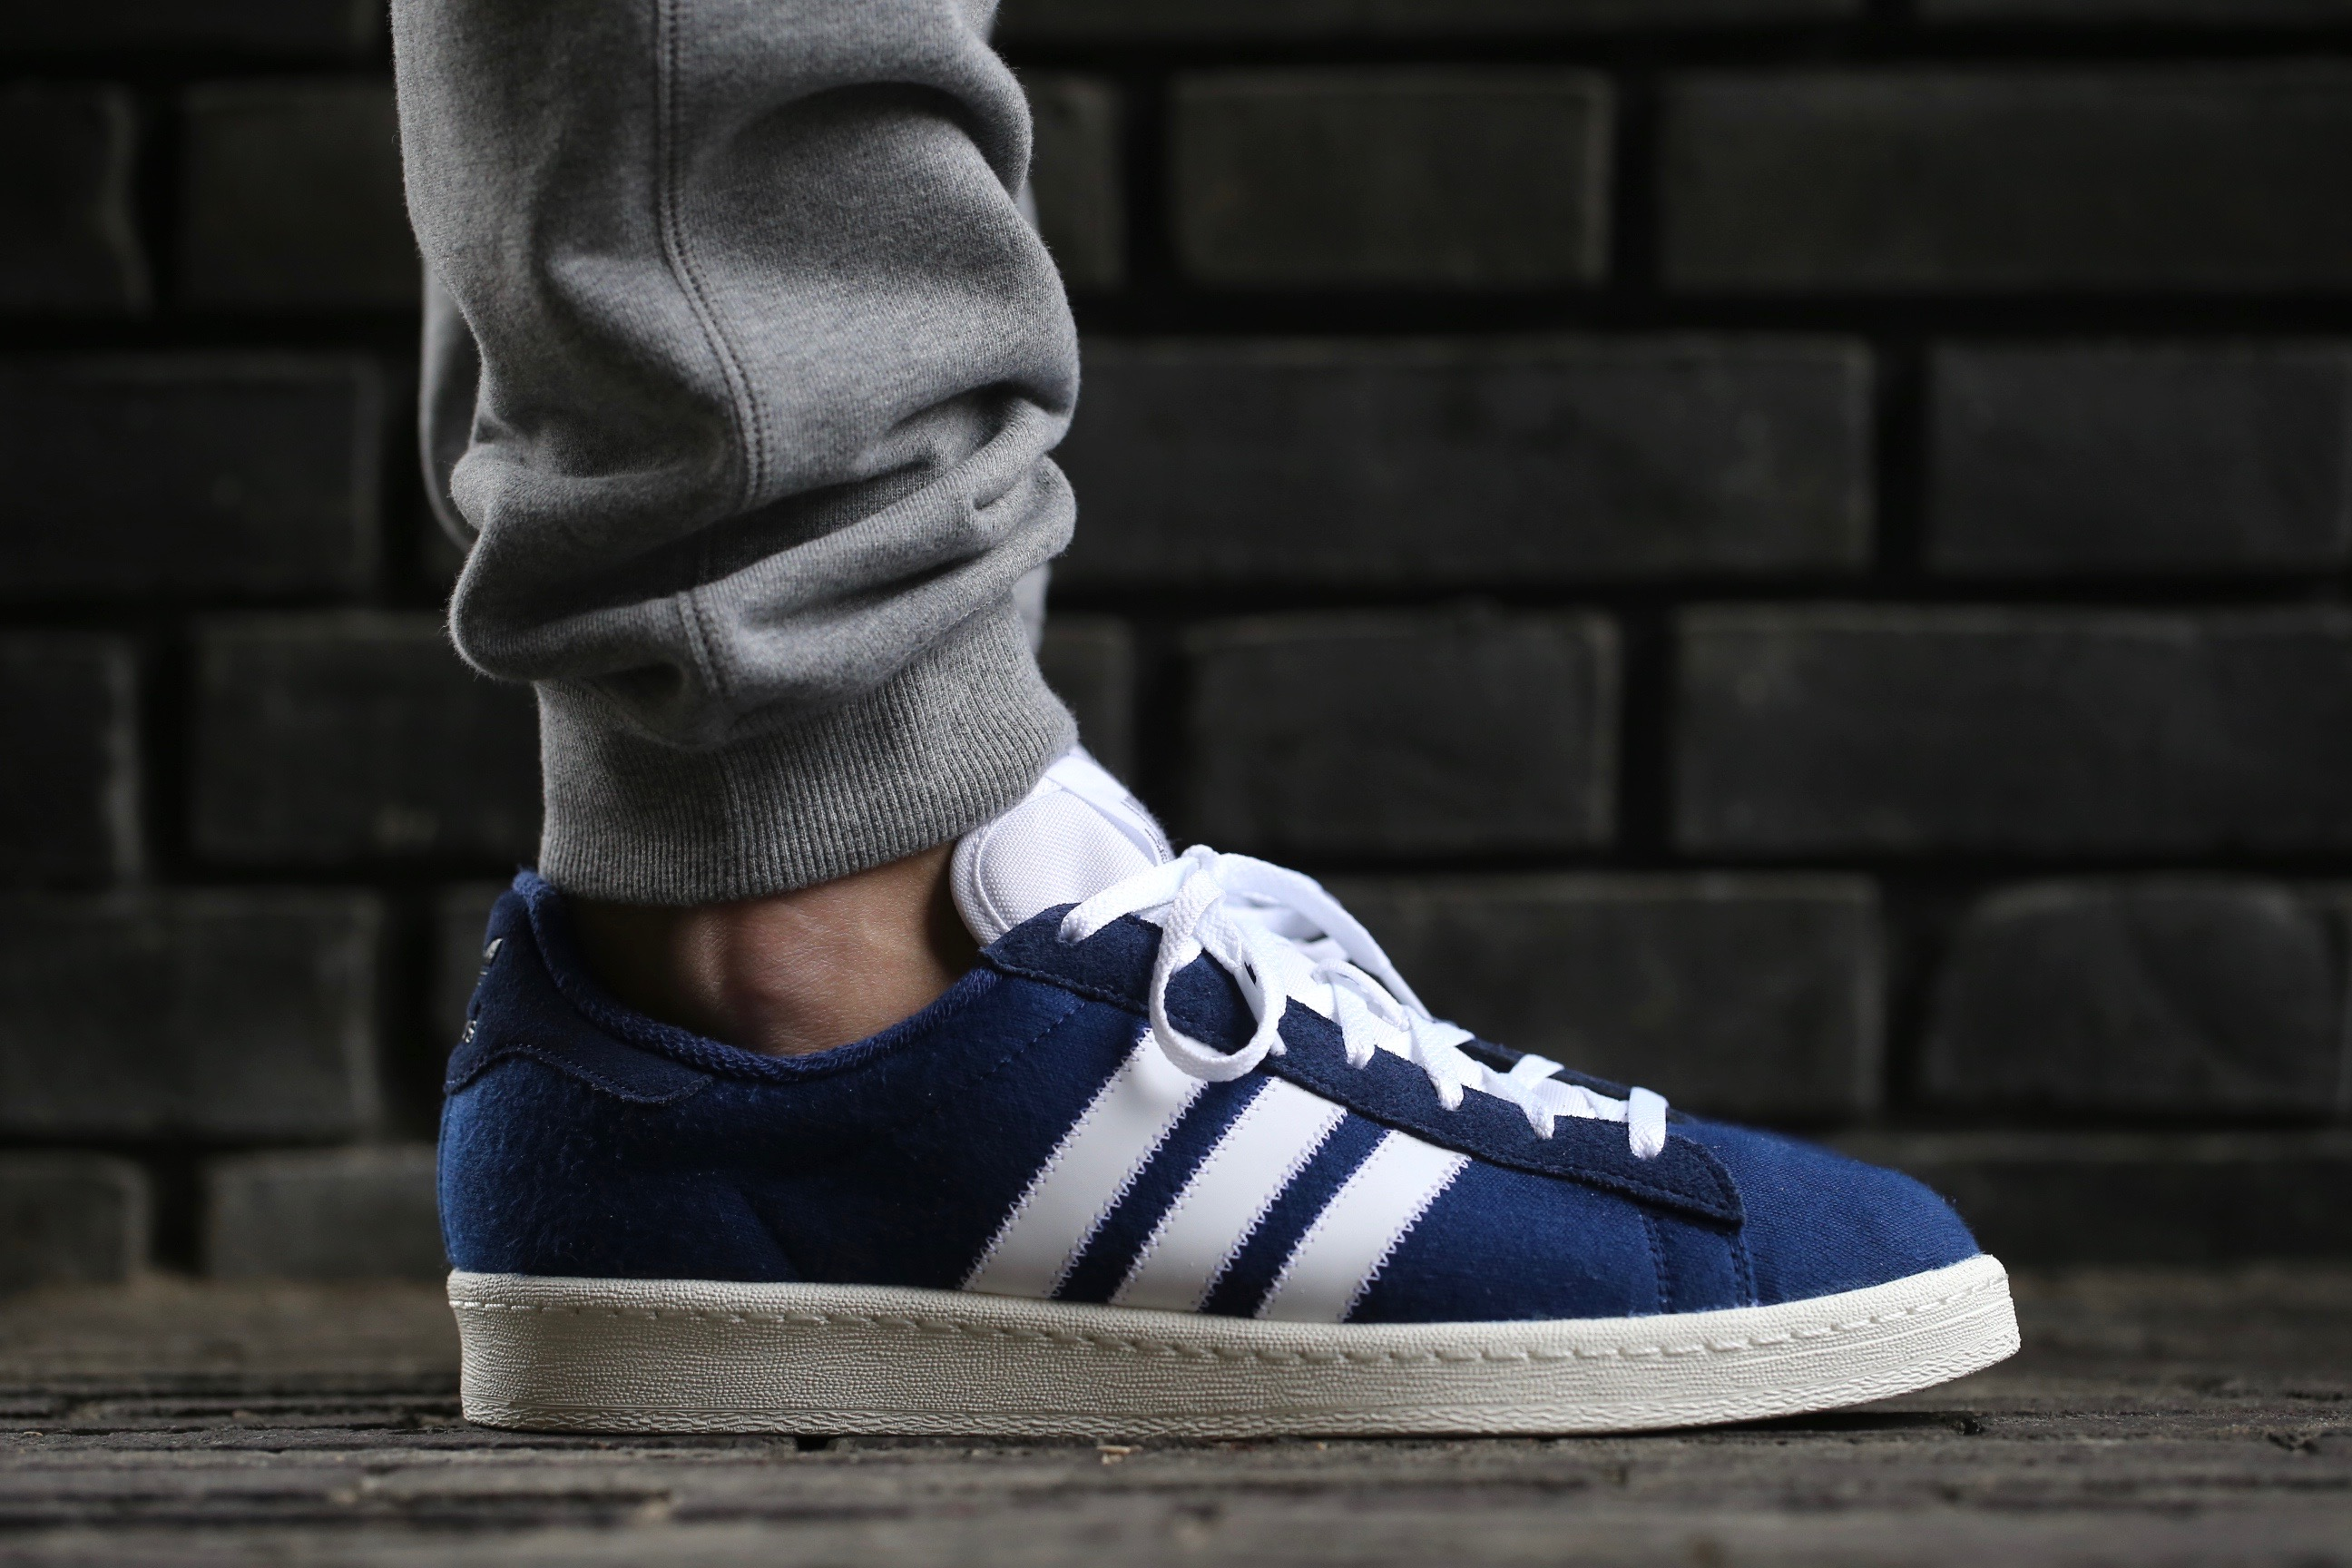 best service 138ab efd41 BEDWIN  THE HEARTBREAKERS x adidas Originals BW Campus 80s –